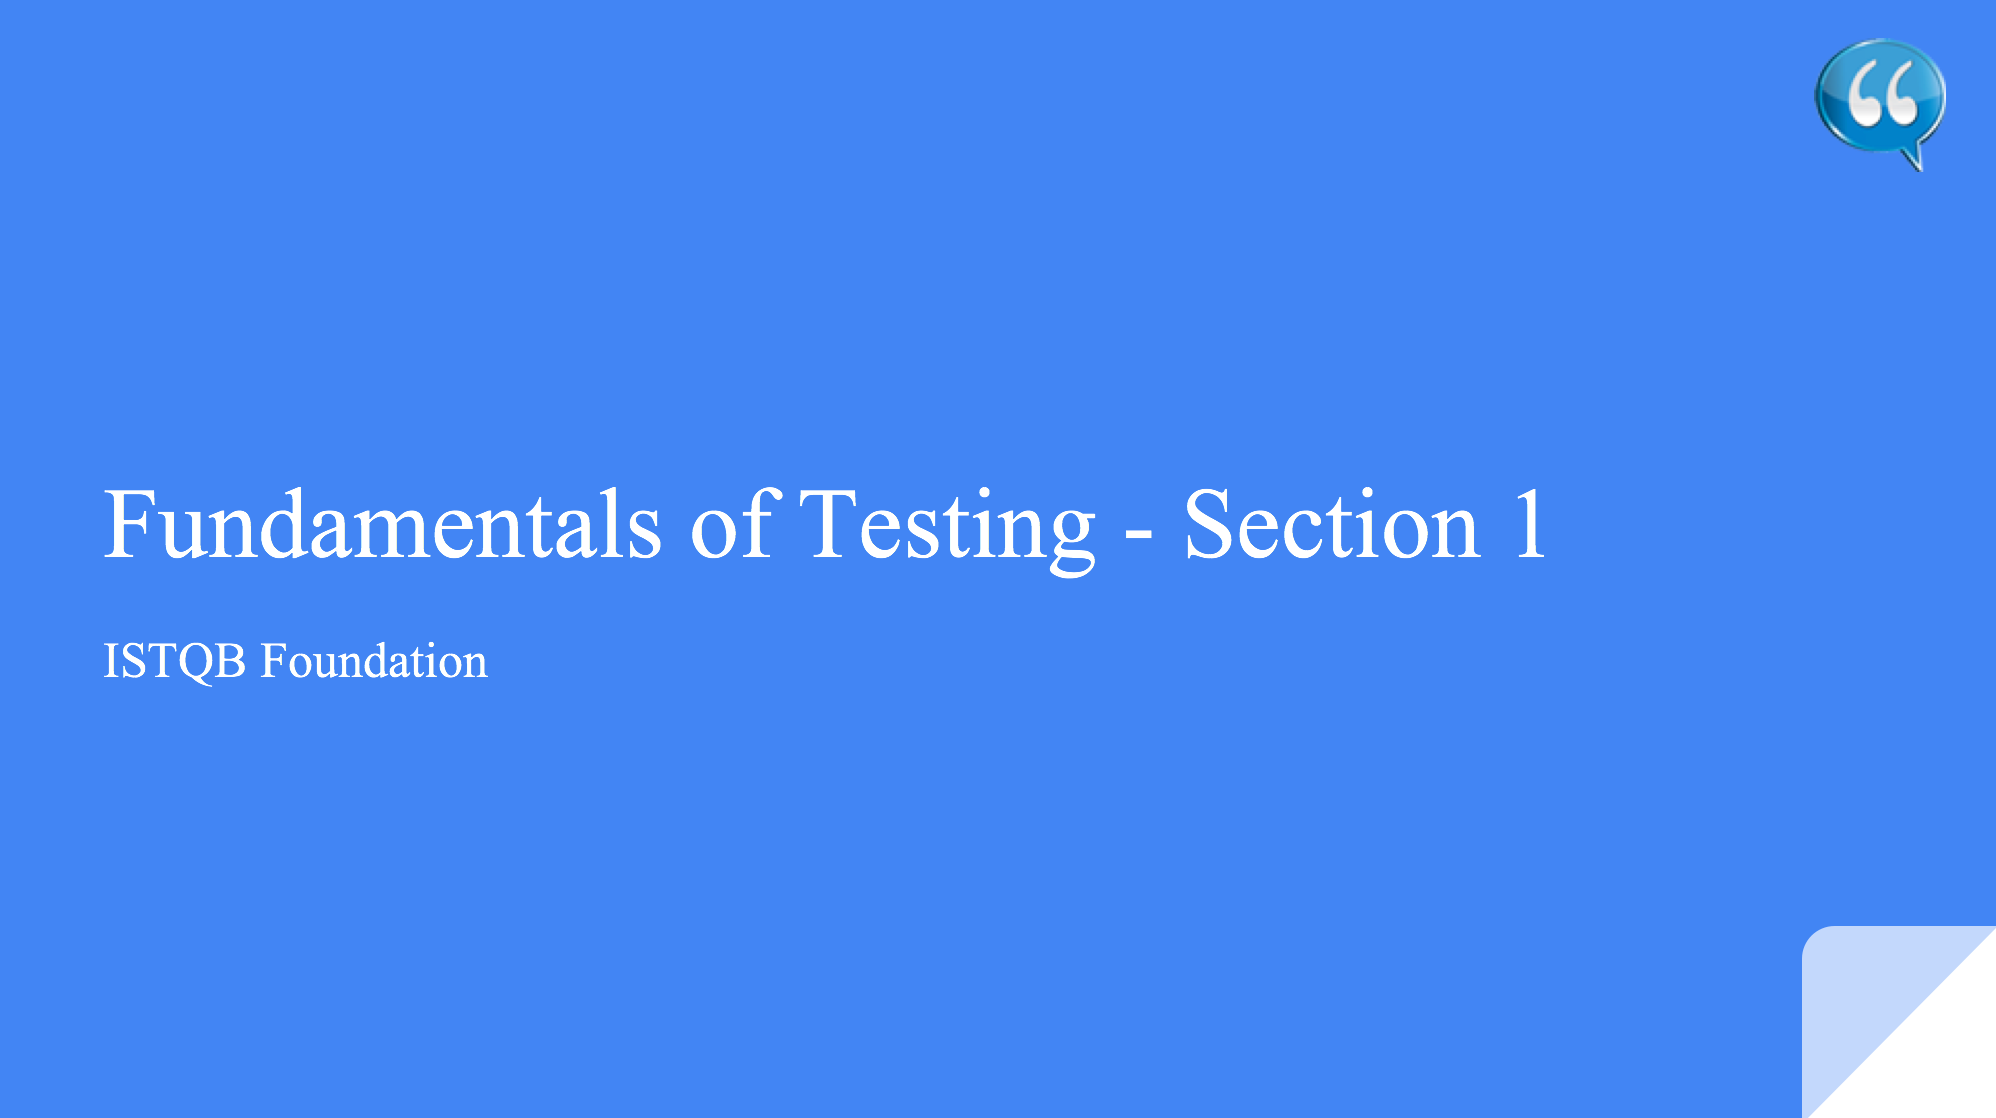 Fundamentals of Testing Introduction – ISTQB Section 1